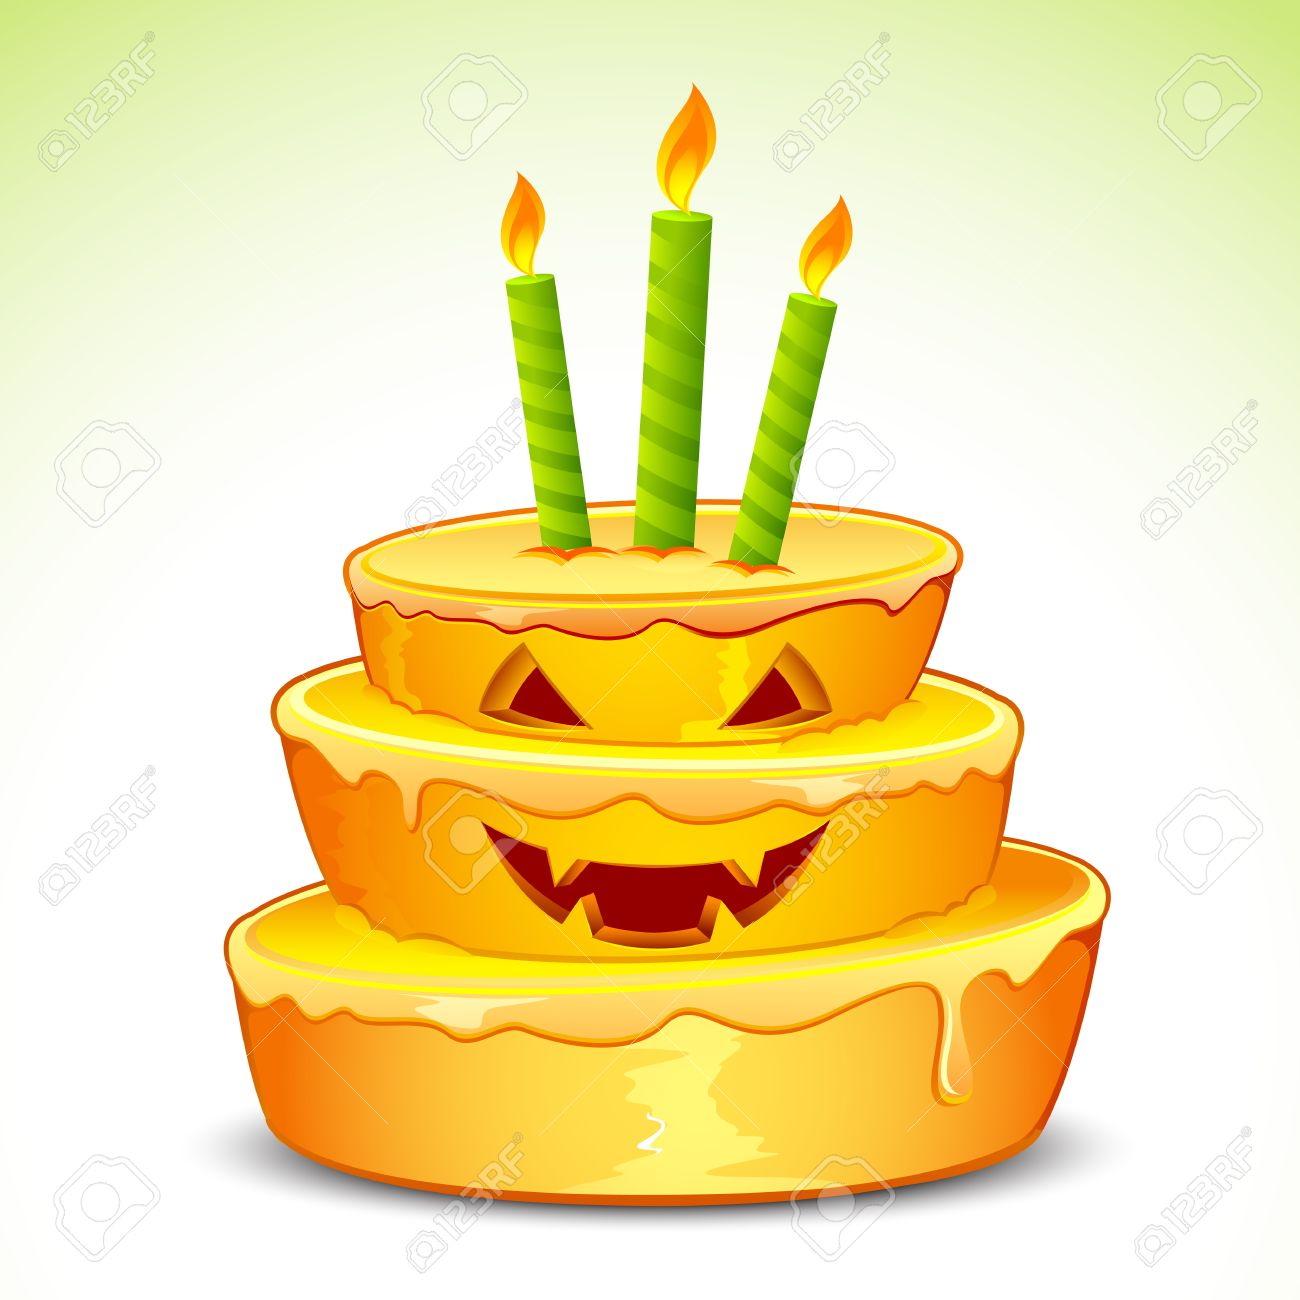 Mead halloween clip art. illustration of pumpkin cake .